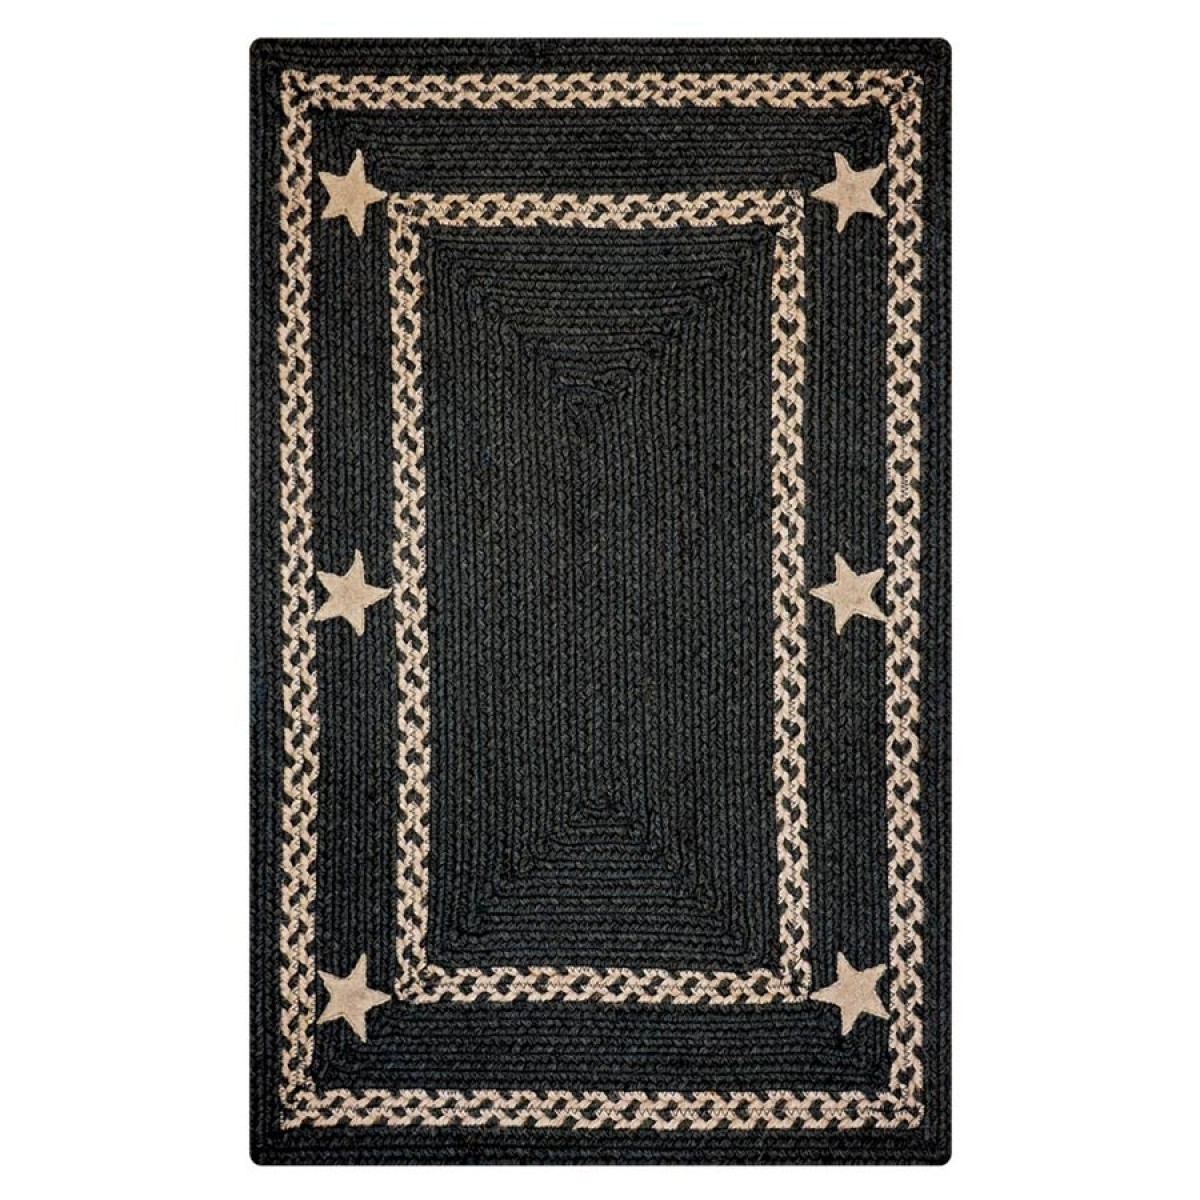 Buy Texas Black Jute Braided Rugs Online Homespice